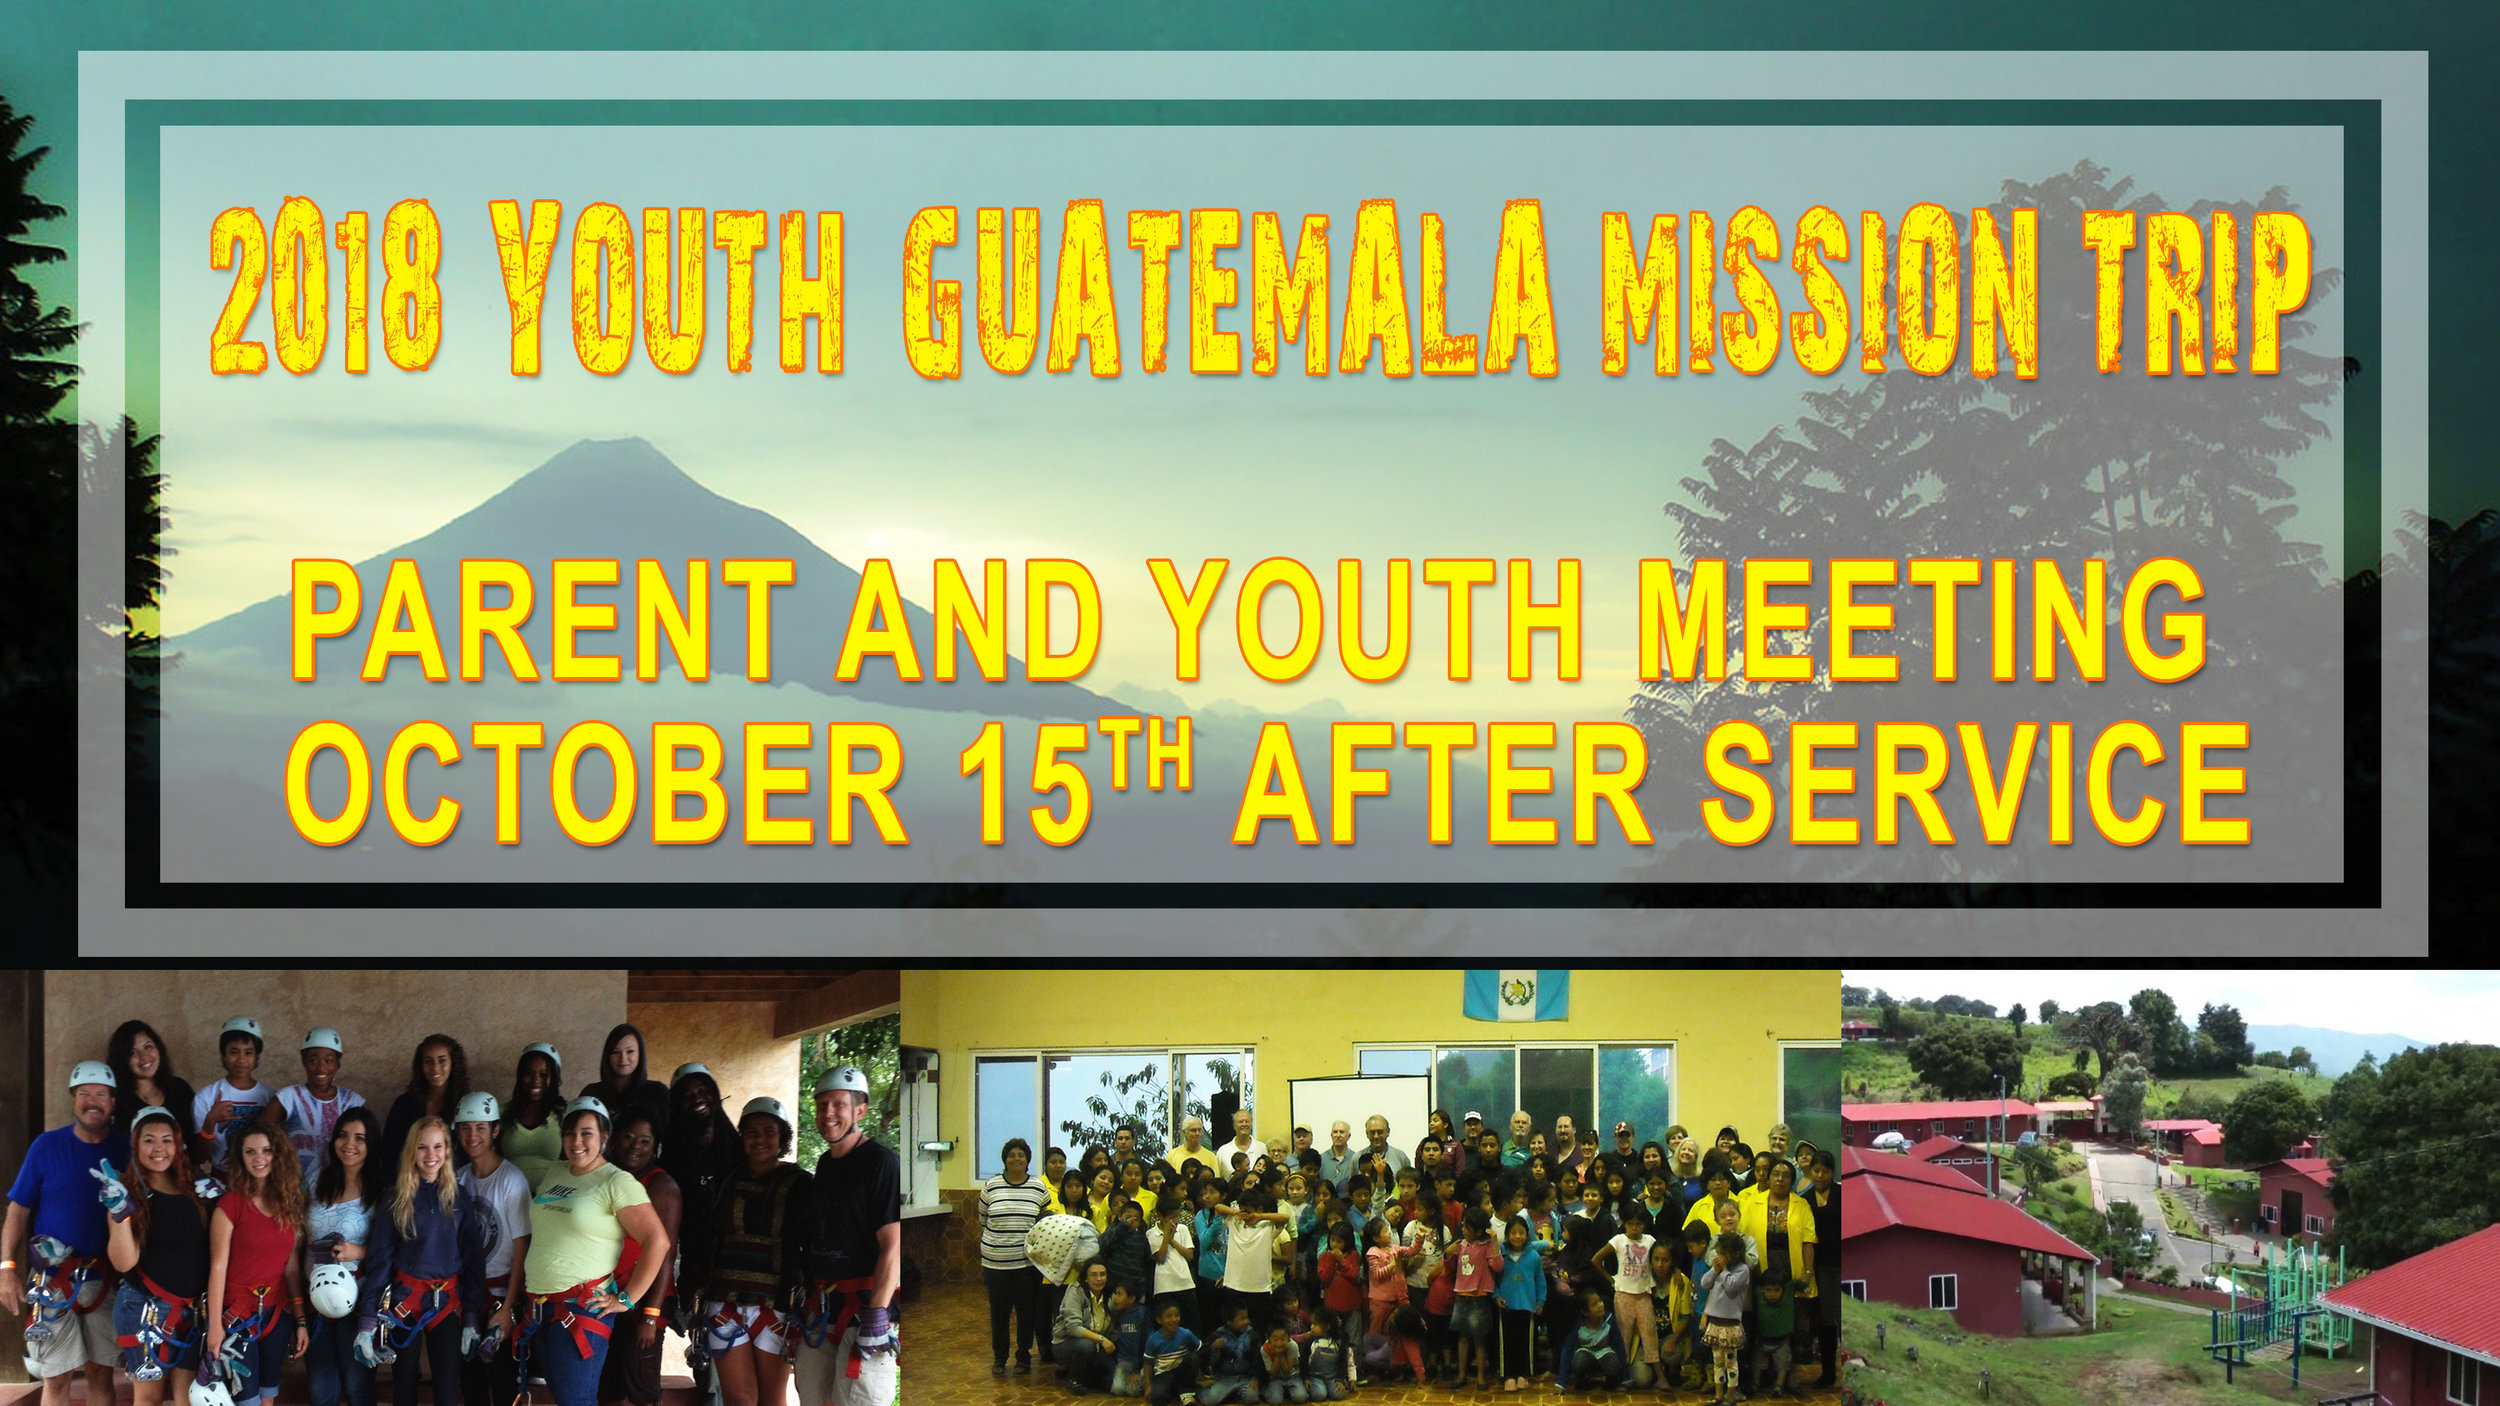 2018 Youth Guatemala Missions Trip Announcment.jpg